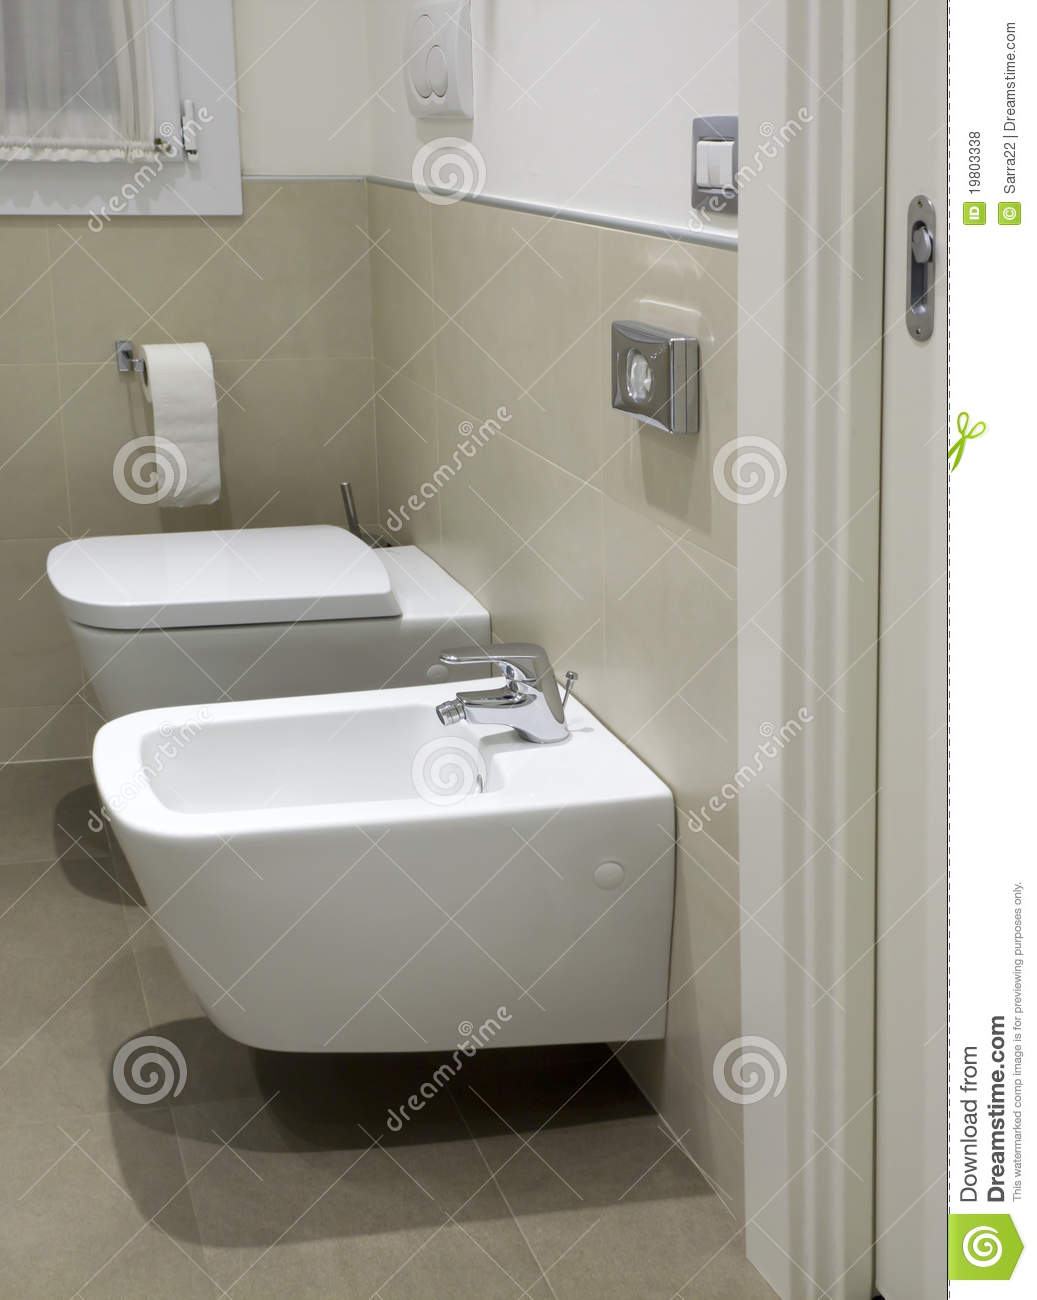 toilette et bidet dans la salle de bains d 39 h tel photos libres de droits image 19803338. Black Bedroom Furniture Sets. Home Design Ideas